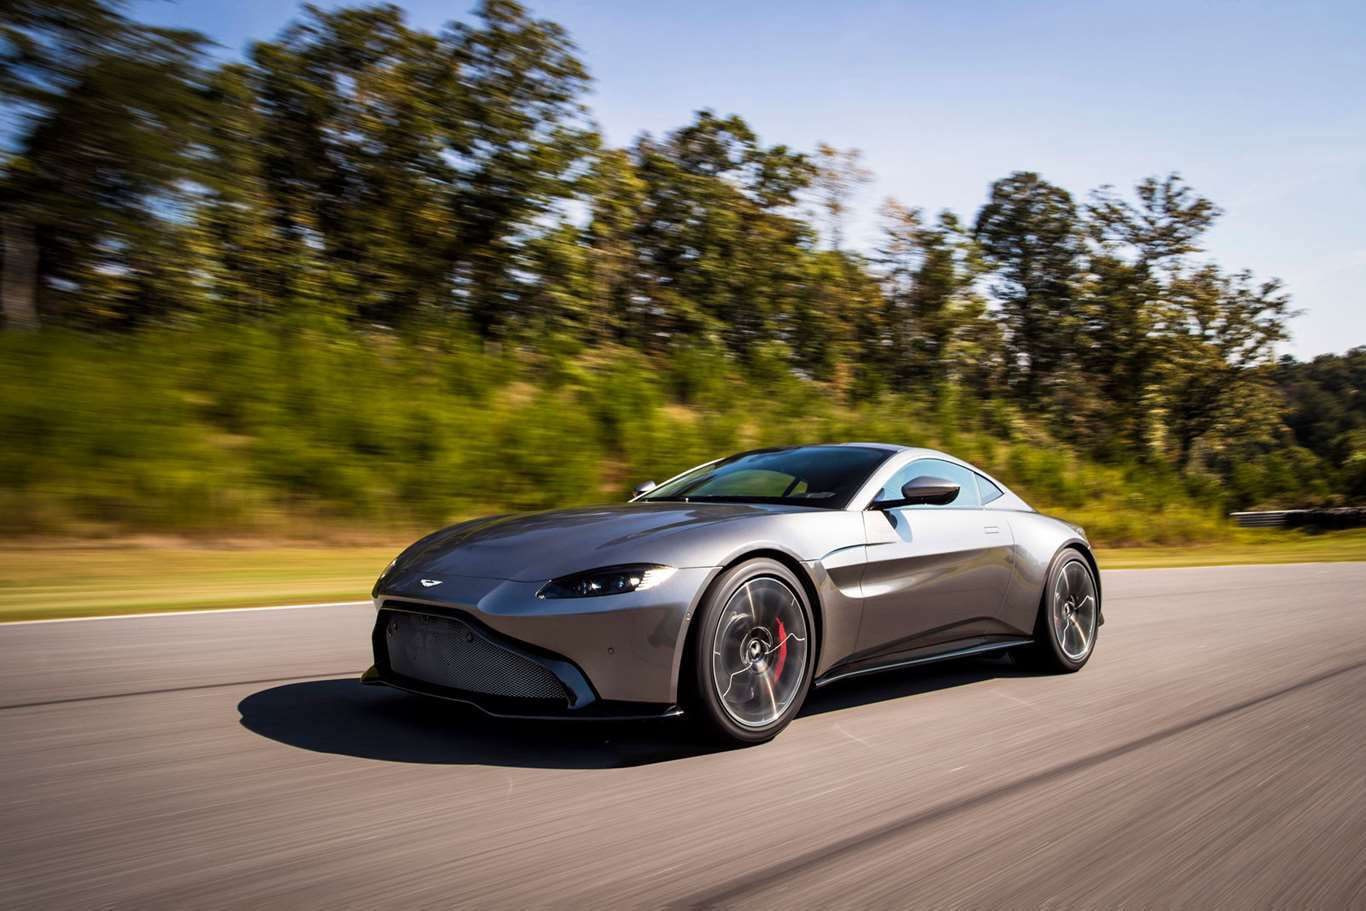 High End Cars >> Cars 2019 Aston Martin Vantage Gives High End Buyers A True